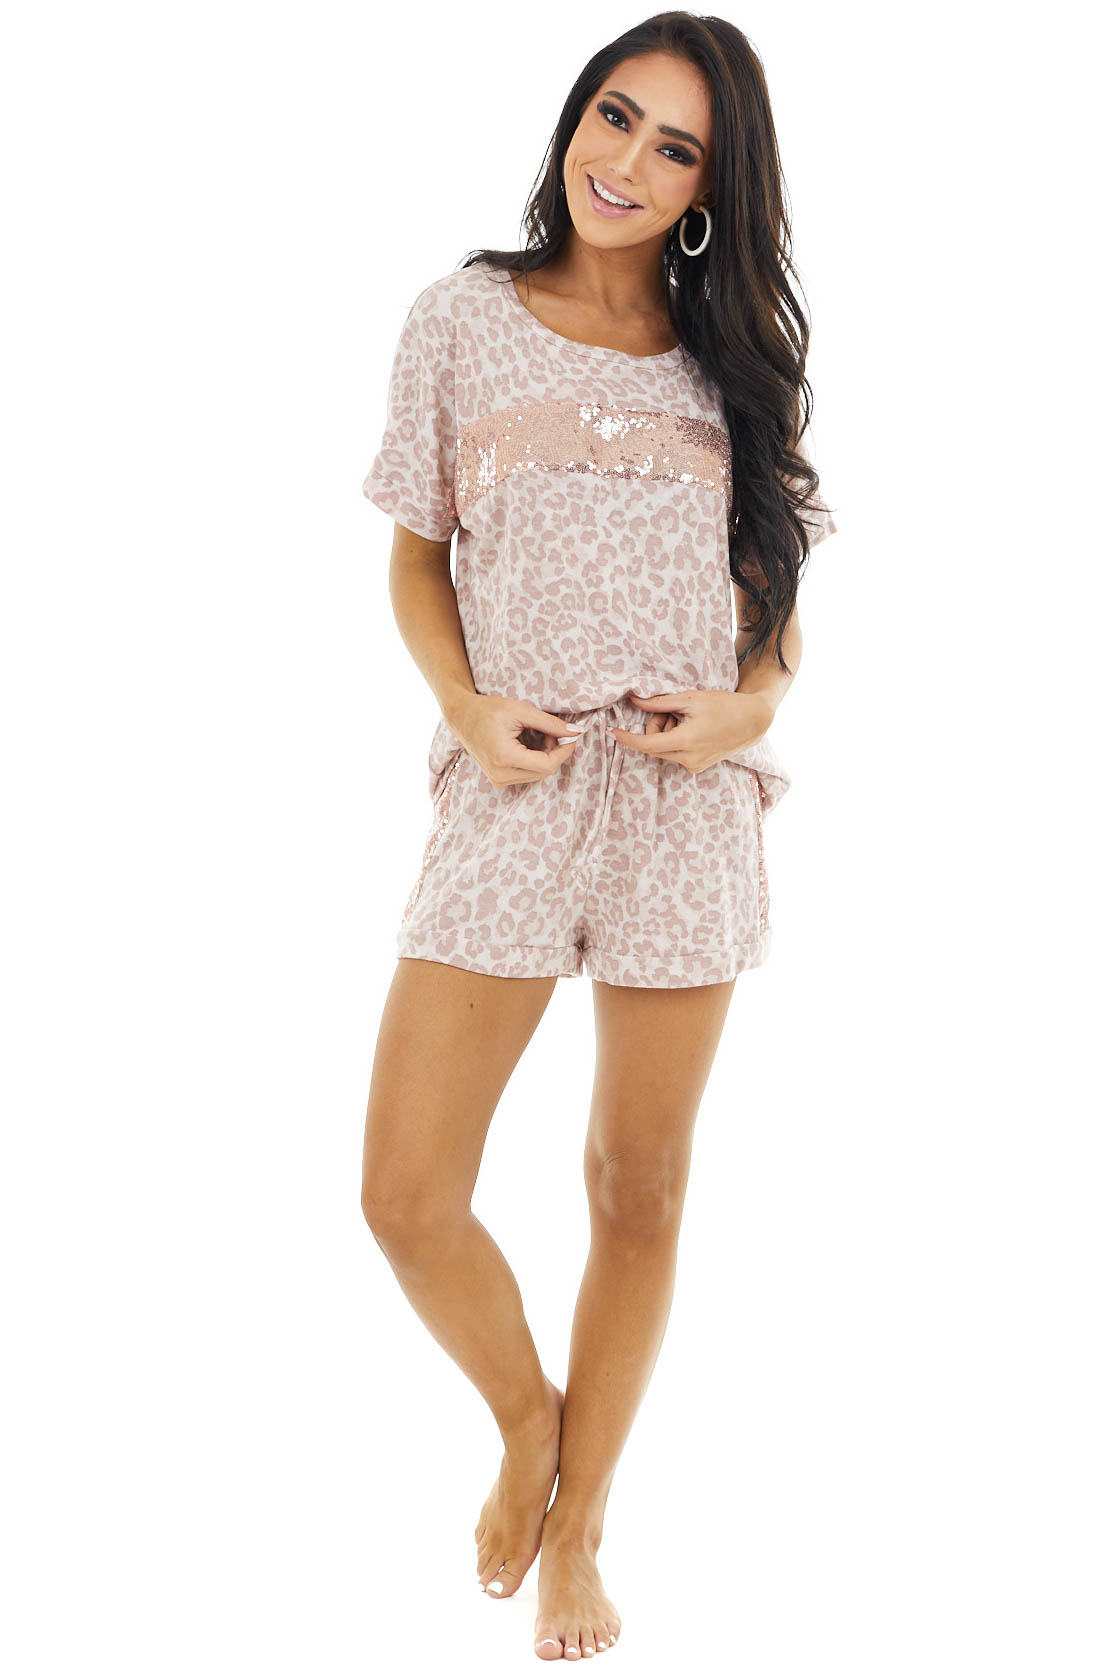 Dusty Blush Leopard Print Sequin Short Sleeve and Shorts Set